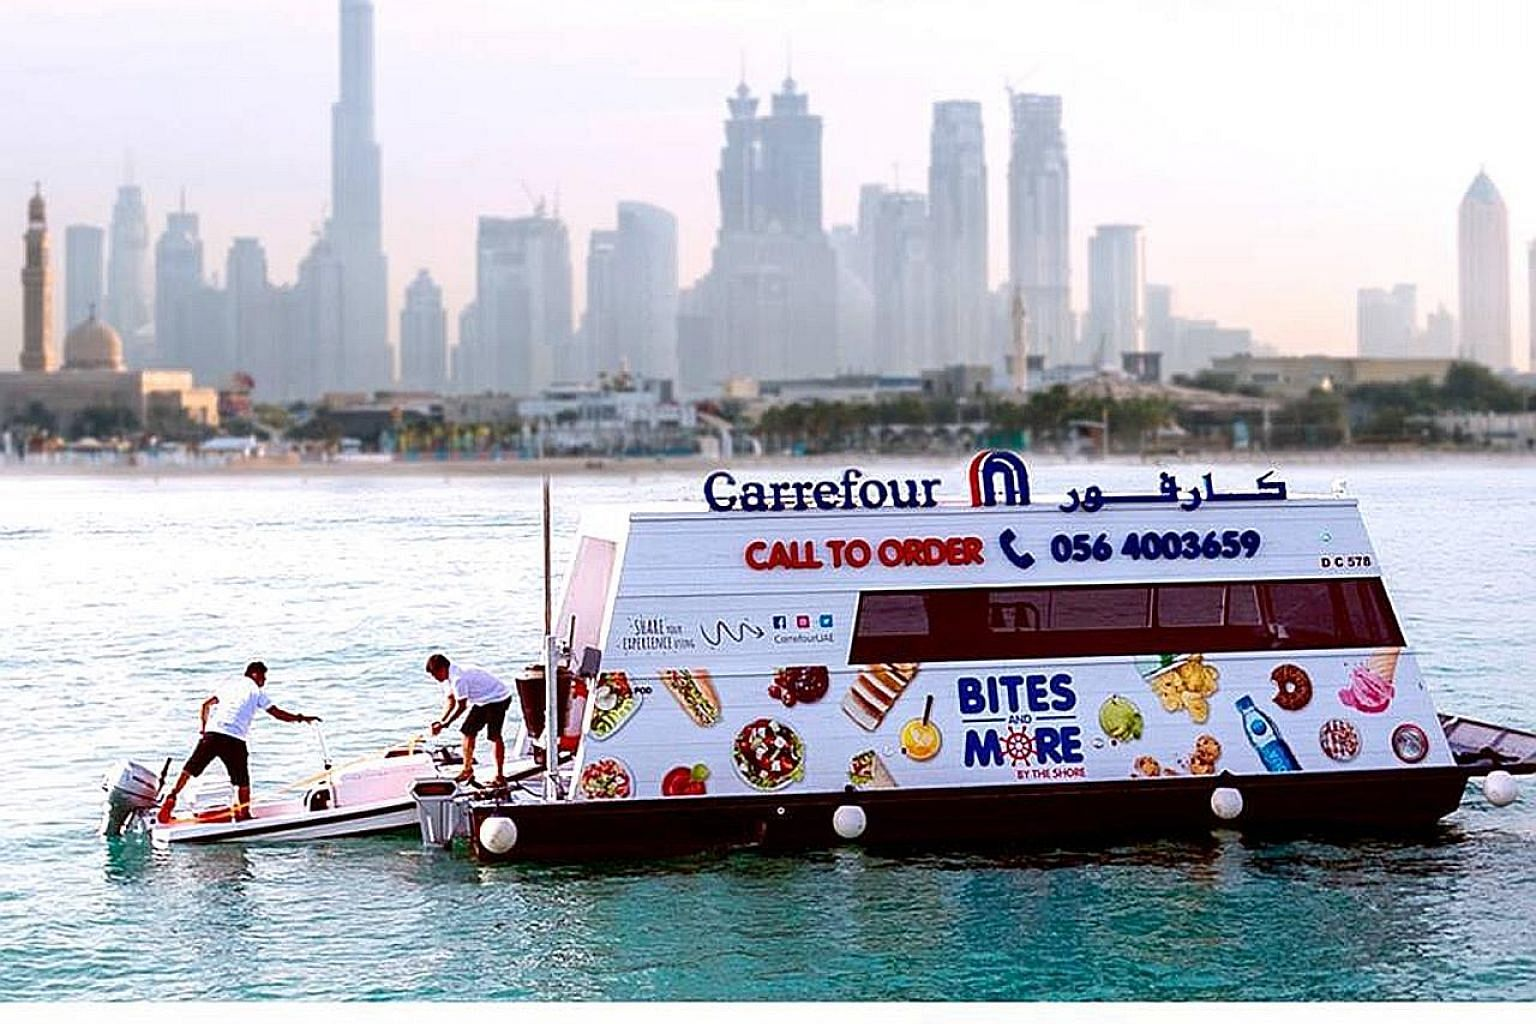 Carrefour has set up sail-through supermarkets to cater to customers on yachts, boats and jet-skis at three of Dubai's beaches.